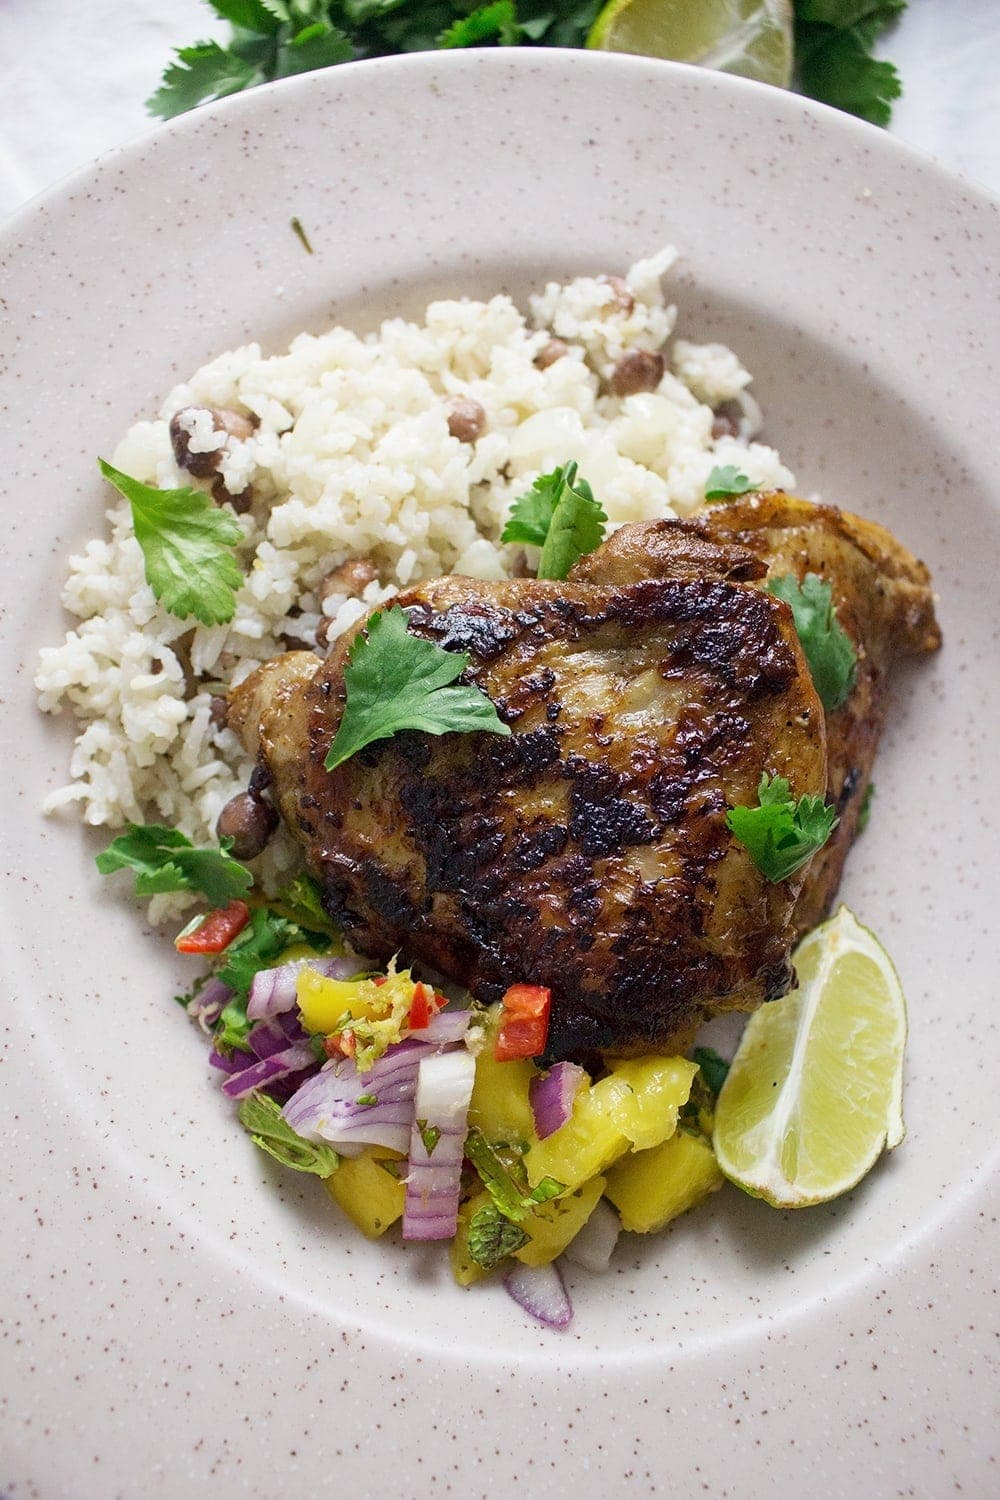 This jerk chicken is sweet and spicy, it tastes amazing served with a mango salsa and turmeric roti. Rice & peas is the perfect base for all this deliciousness!